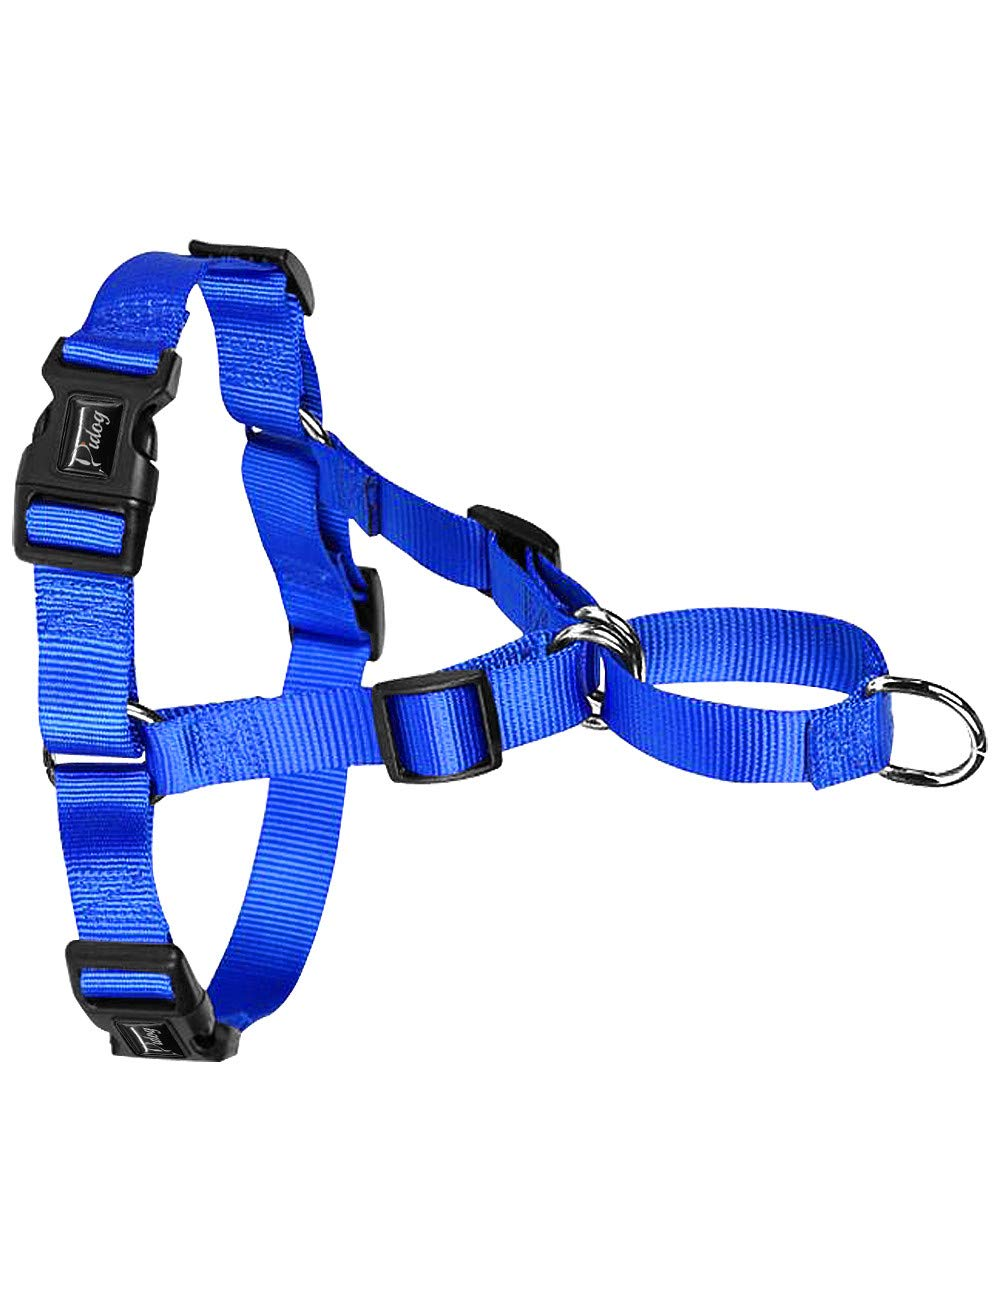 bluee L bluee L XQQX Pet Leashnylon No Pull Harness No Choke Training Harnesses Front Fastening Stop Pulling